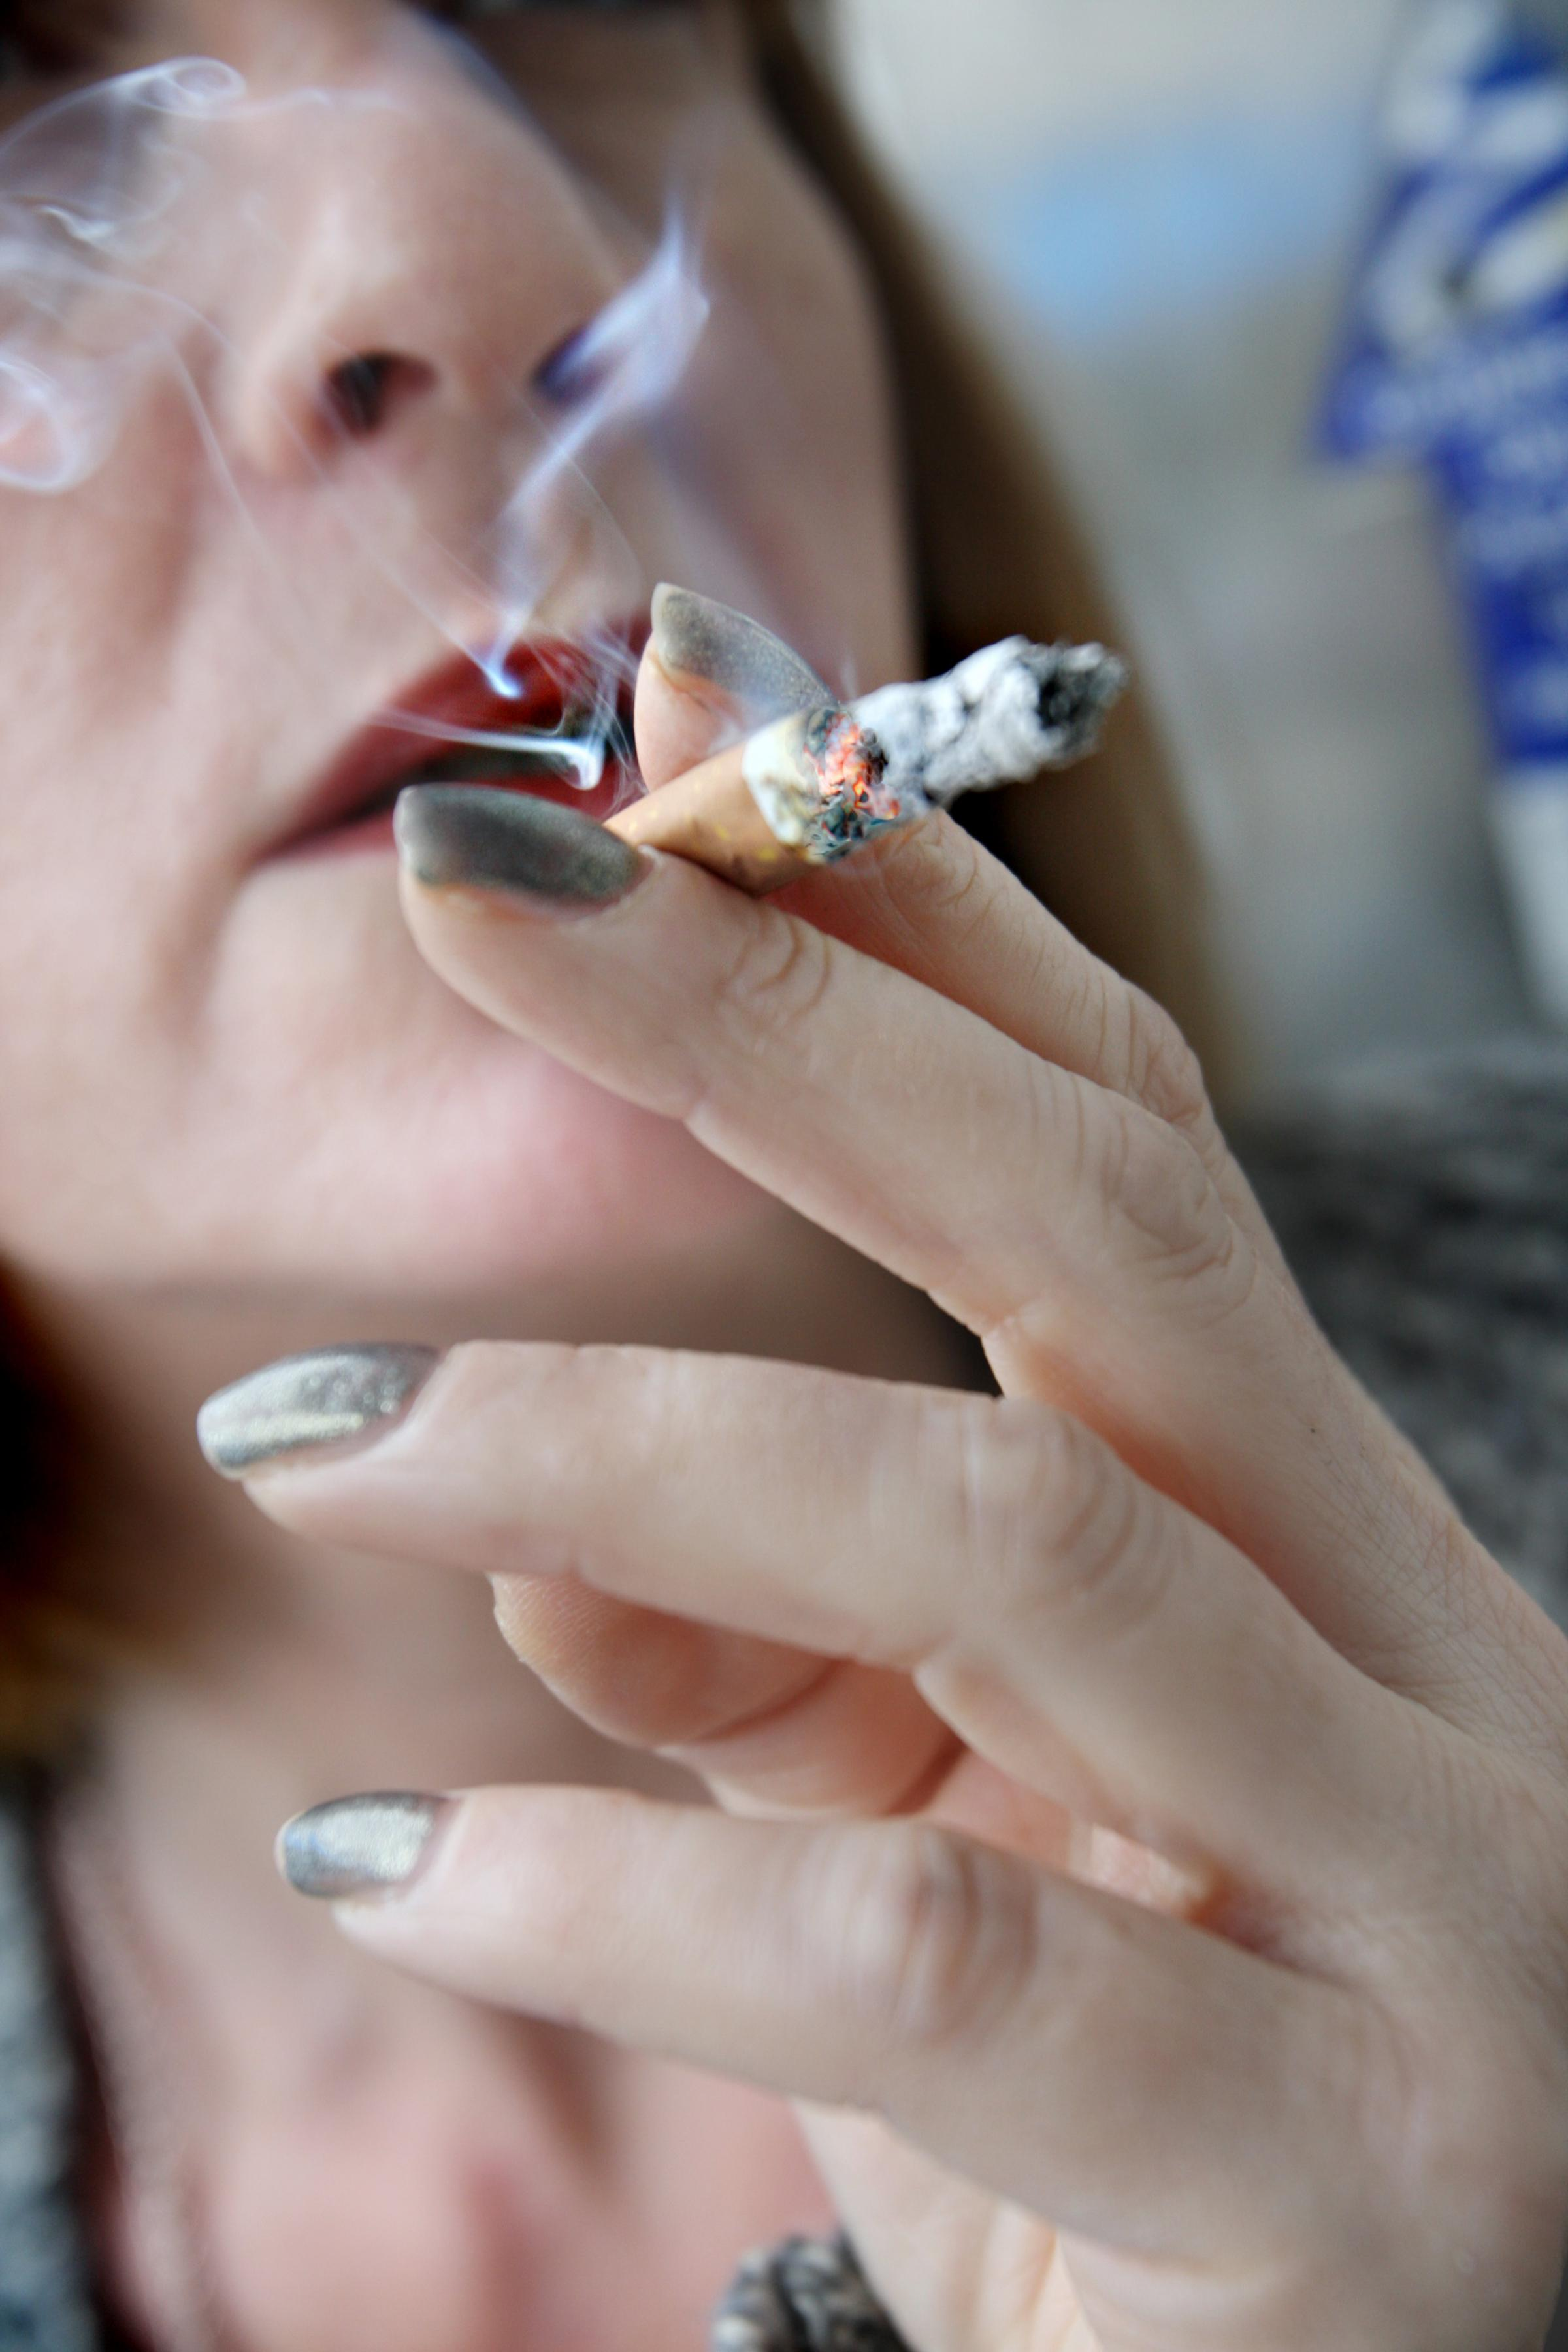 Plunge in smoking rates across Worcestershire welcomed by council